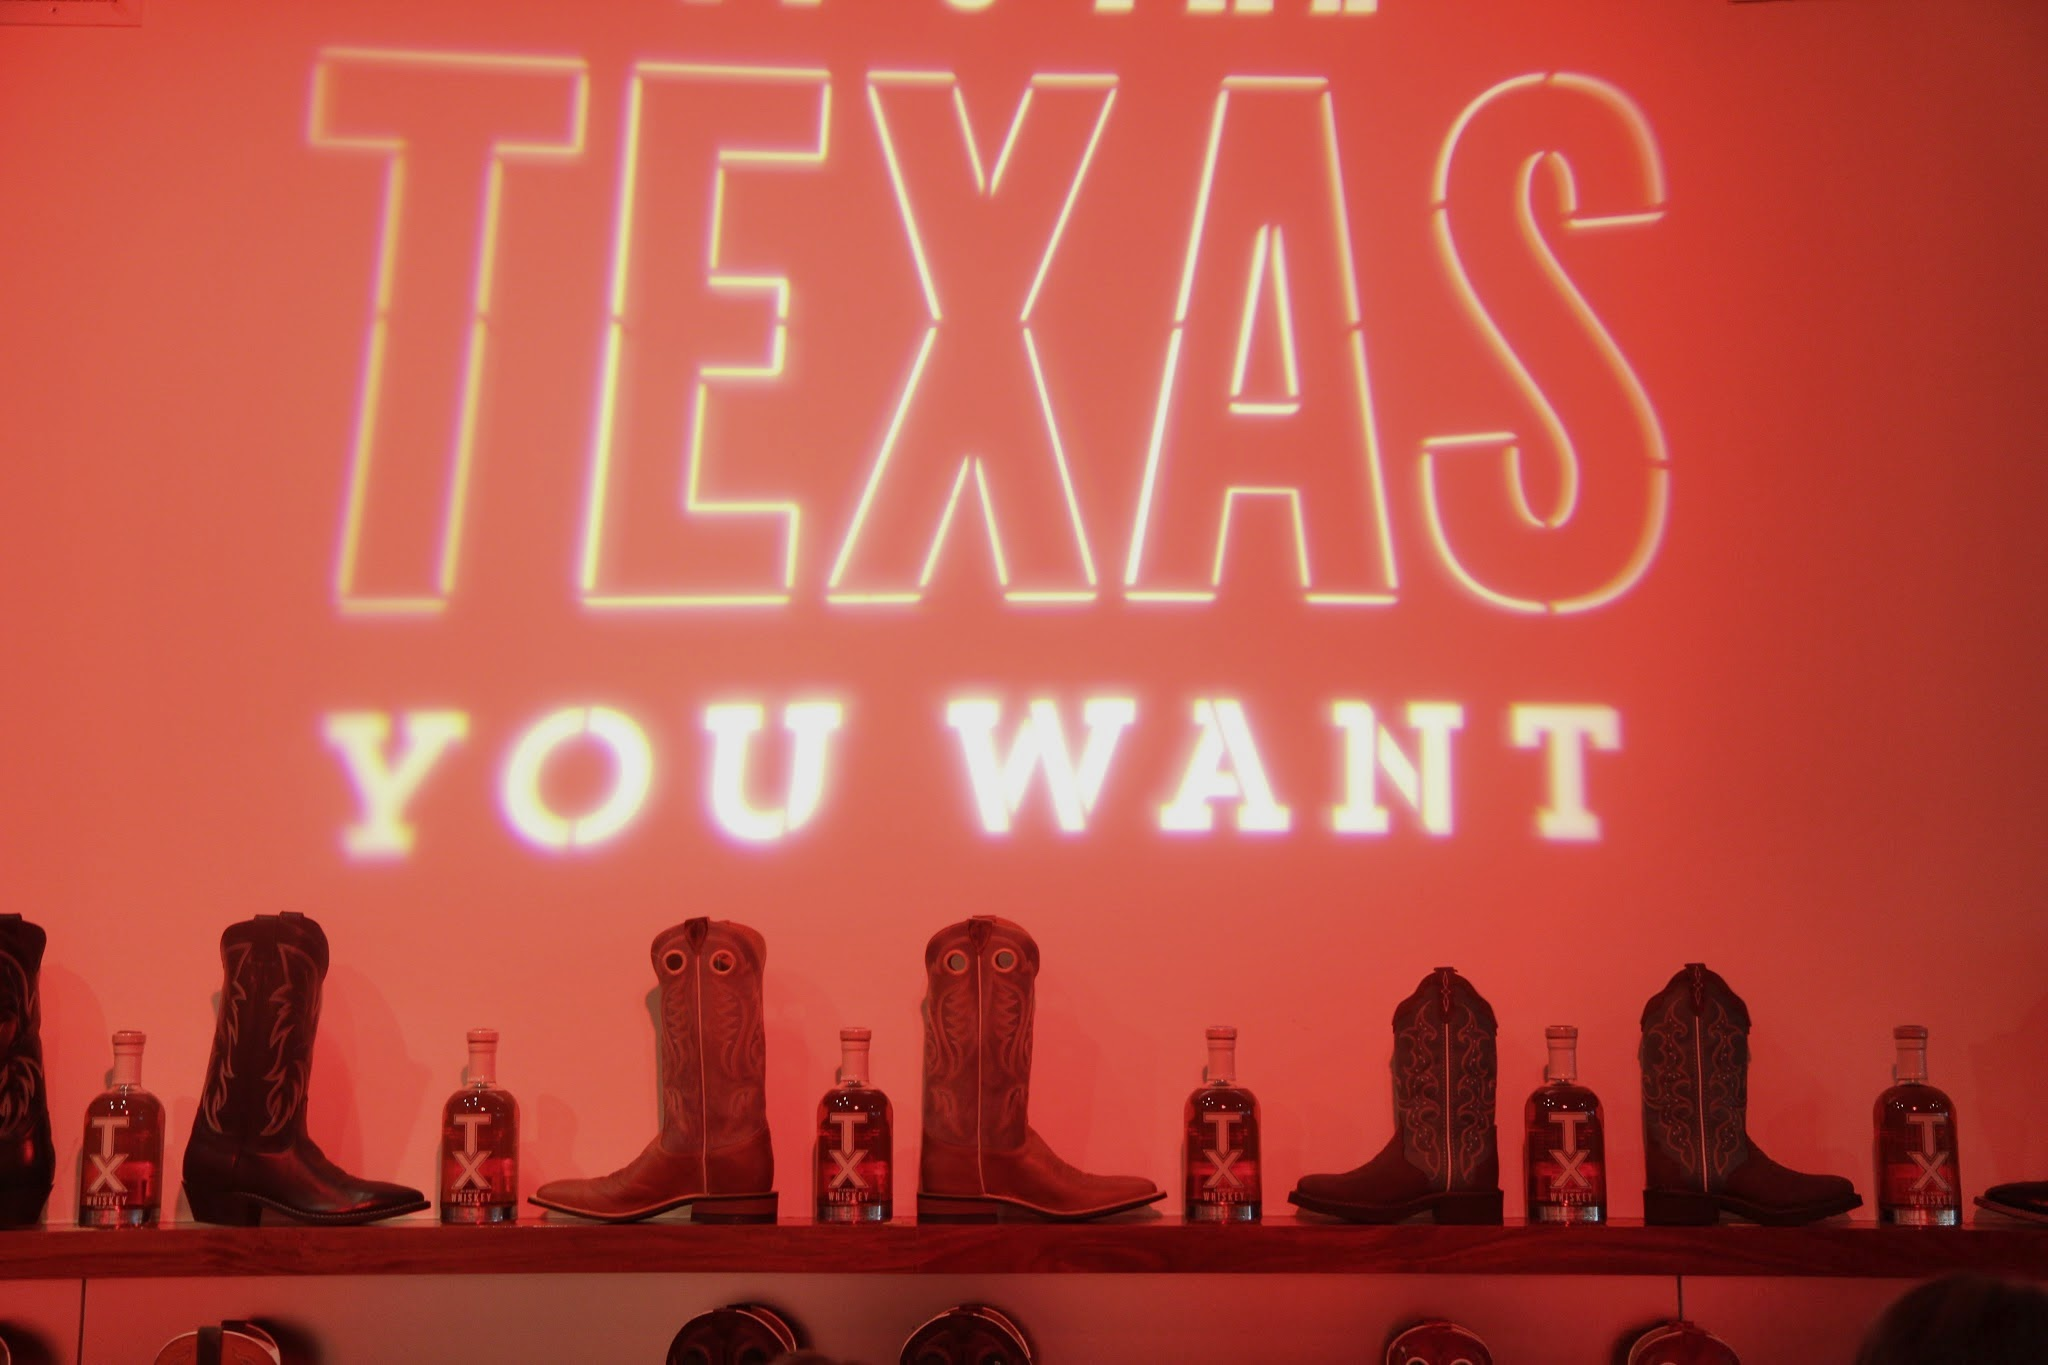 Texas You Want wall projection